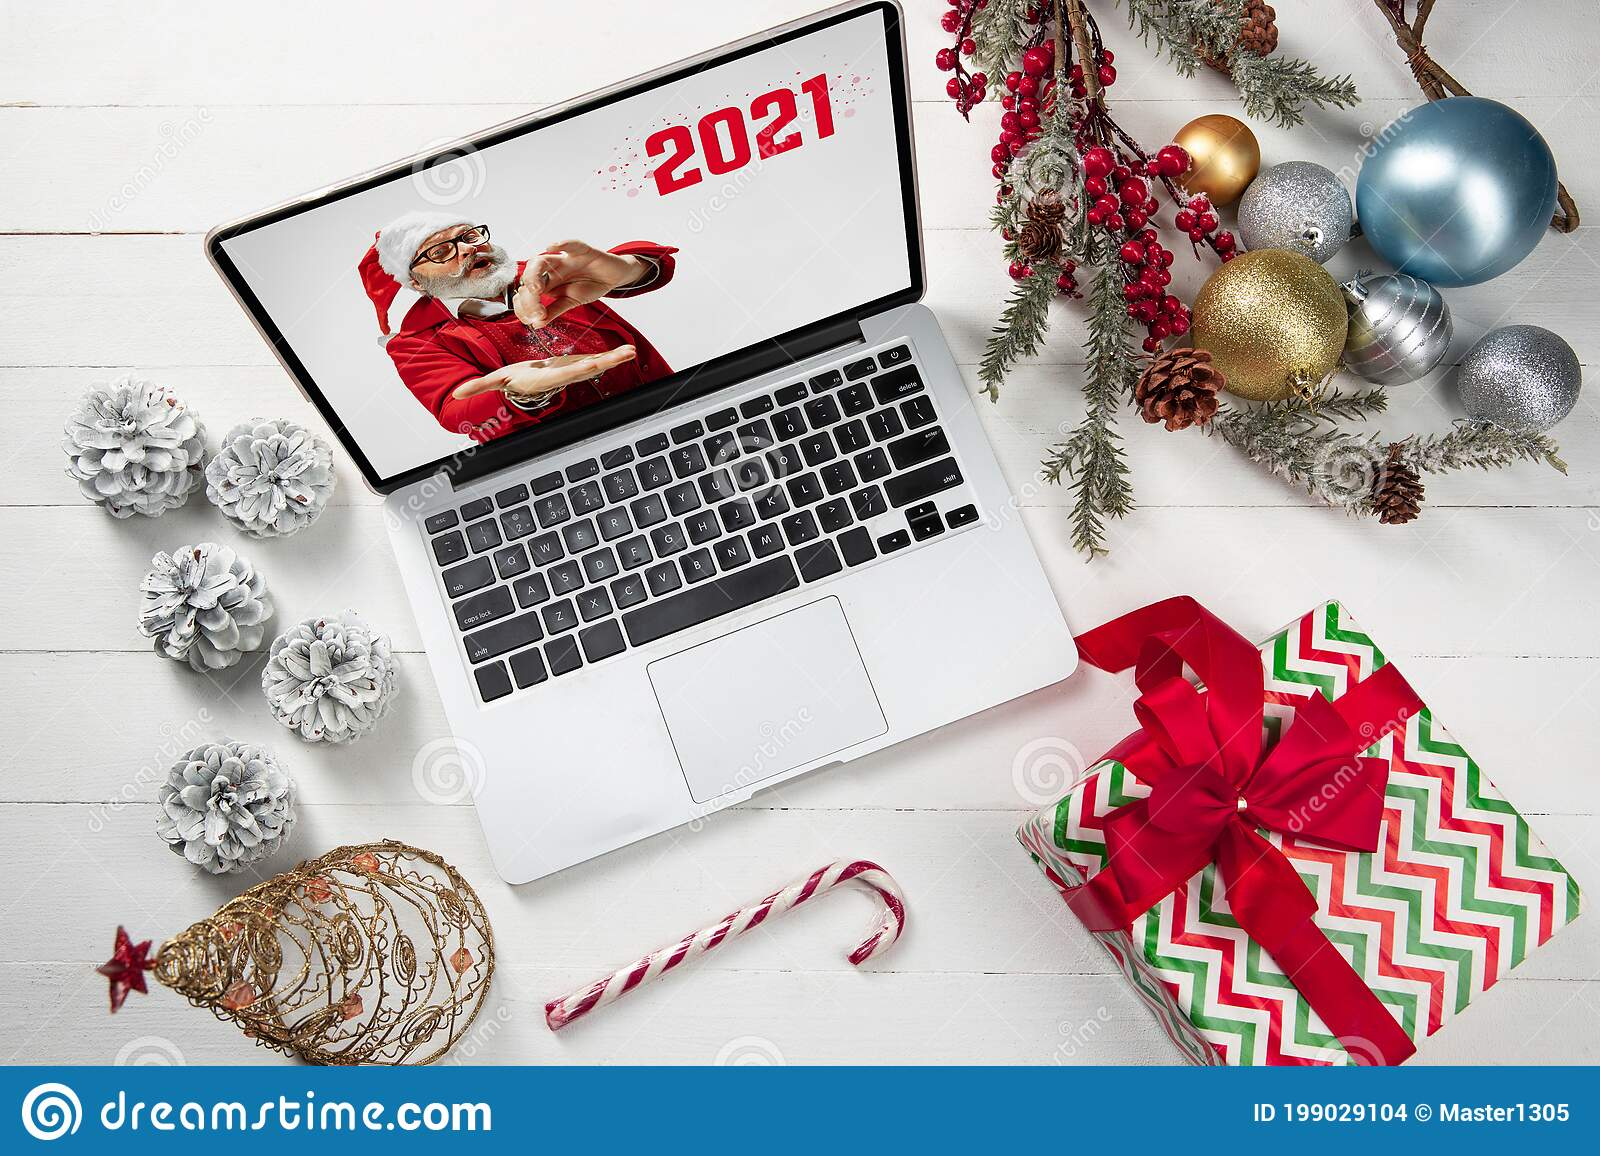 Ad Christmas 2021 Greeting Flyer For Ad Concept Of Christmas 2021 New Year S Winter Mood Holidays Copyspace Postcard Stock Photo Image Of Happy Humor 199029104